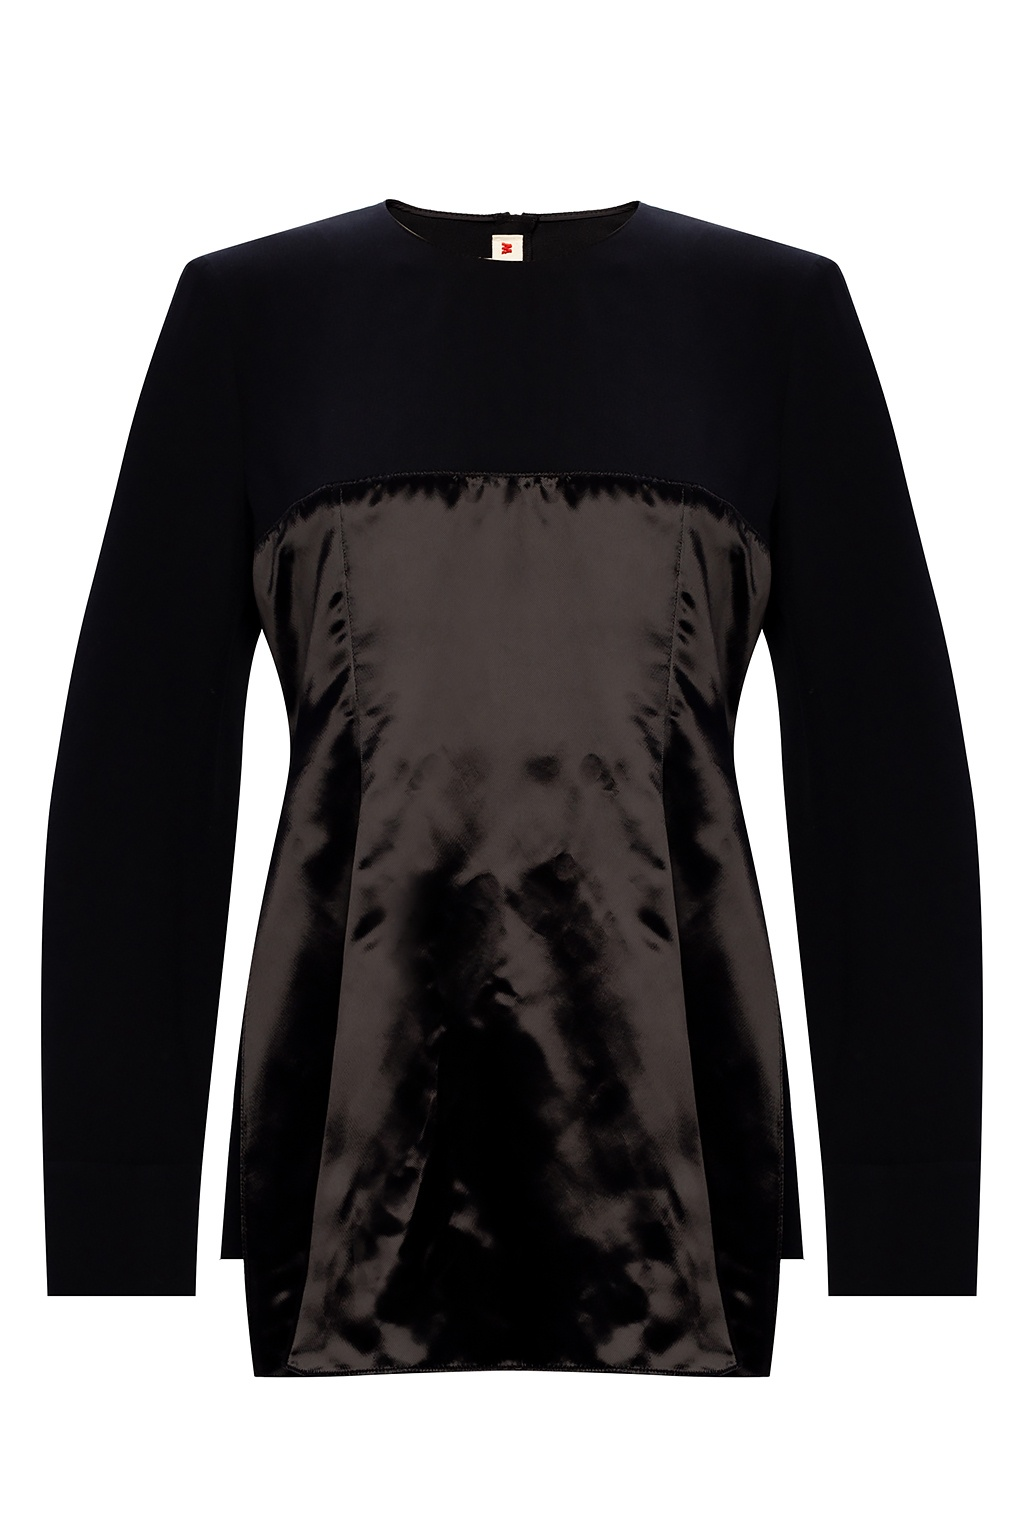 Marni Round neck top